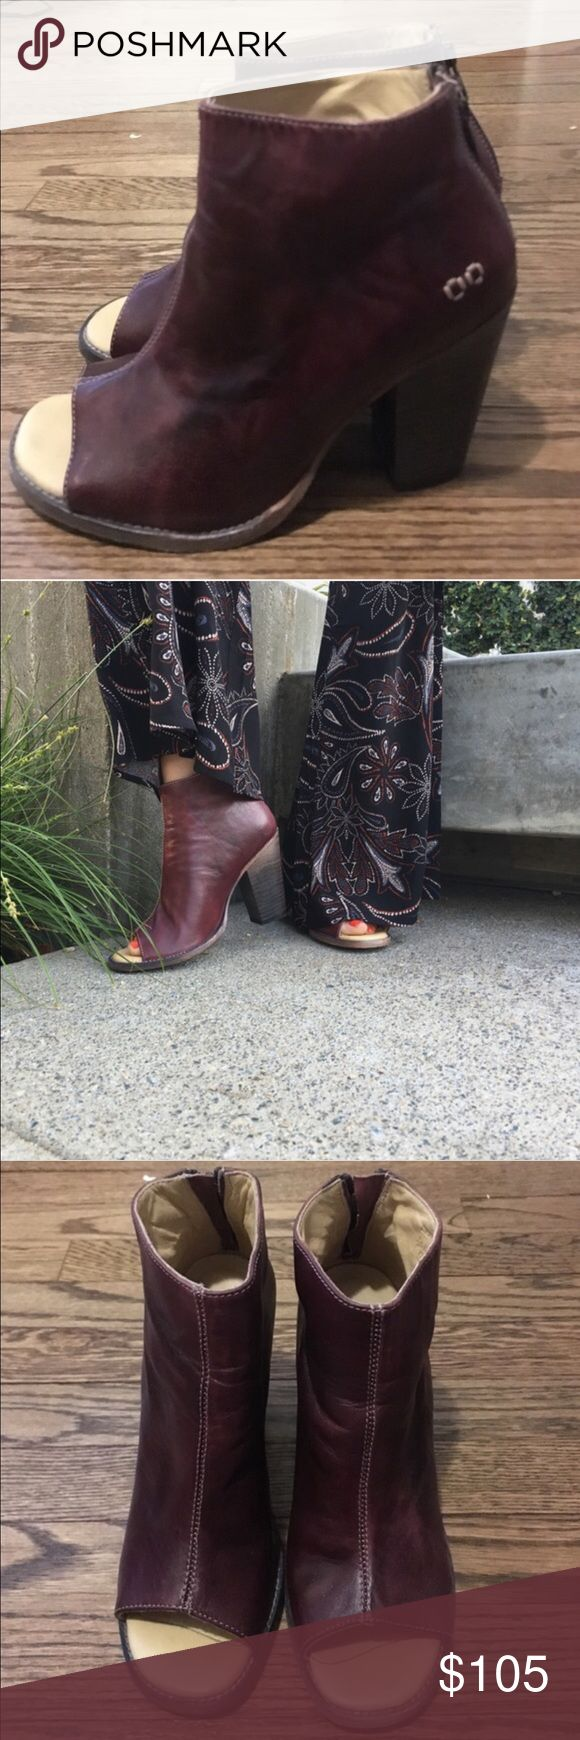 Heeled peep toe shoes Burgundy chunky peep toe booties. Real leather. Great condition, only worn once for a few hours Bed Stu Shoes Heels